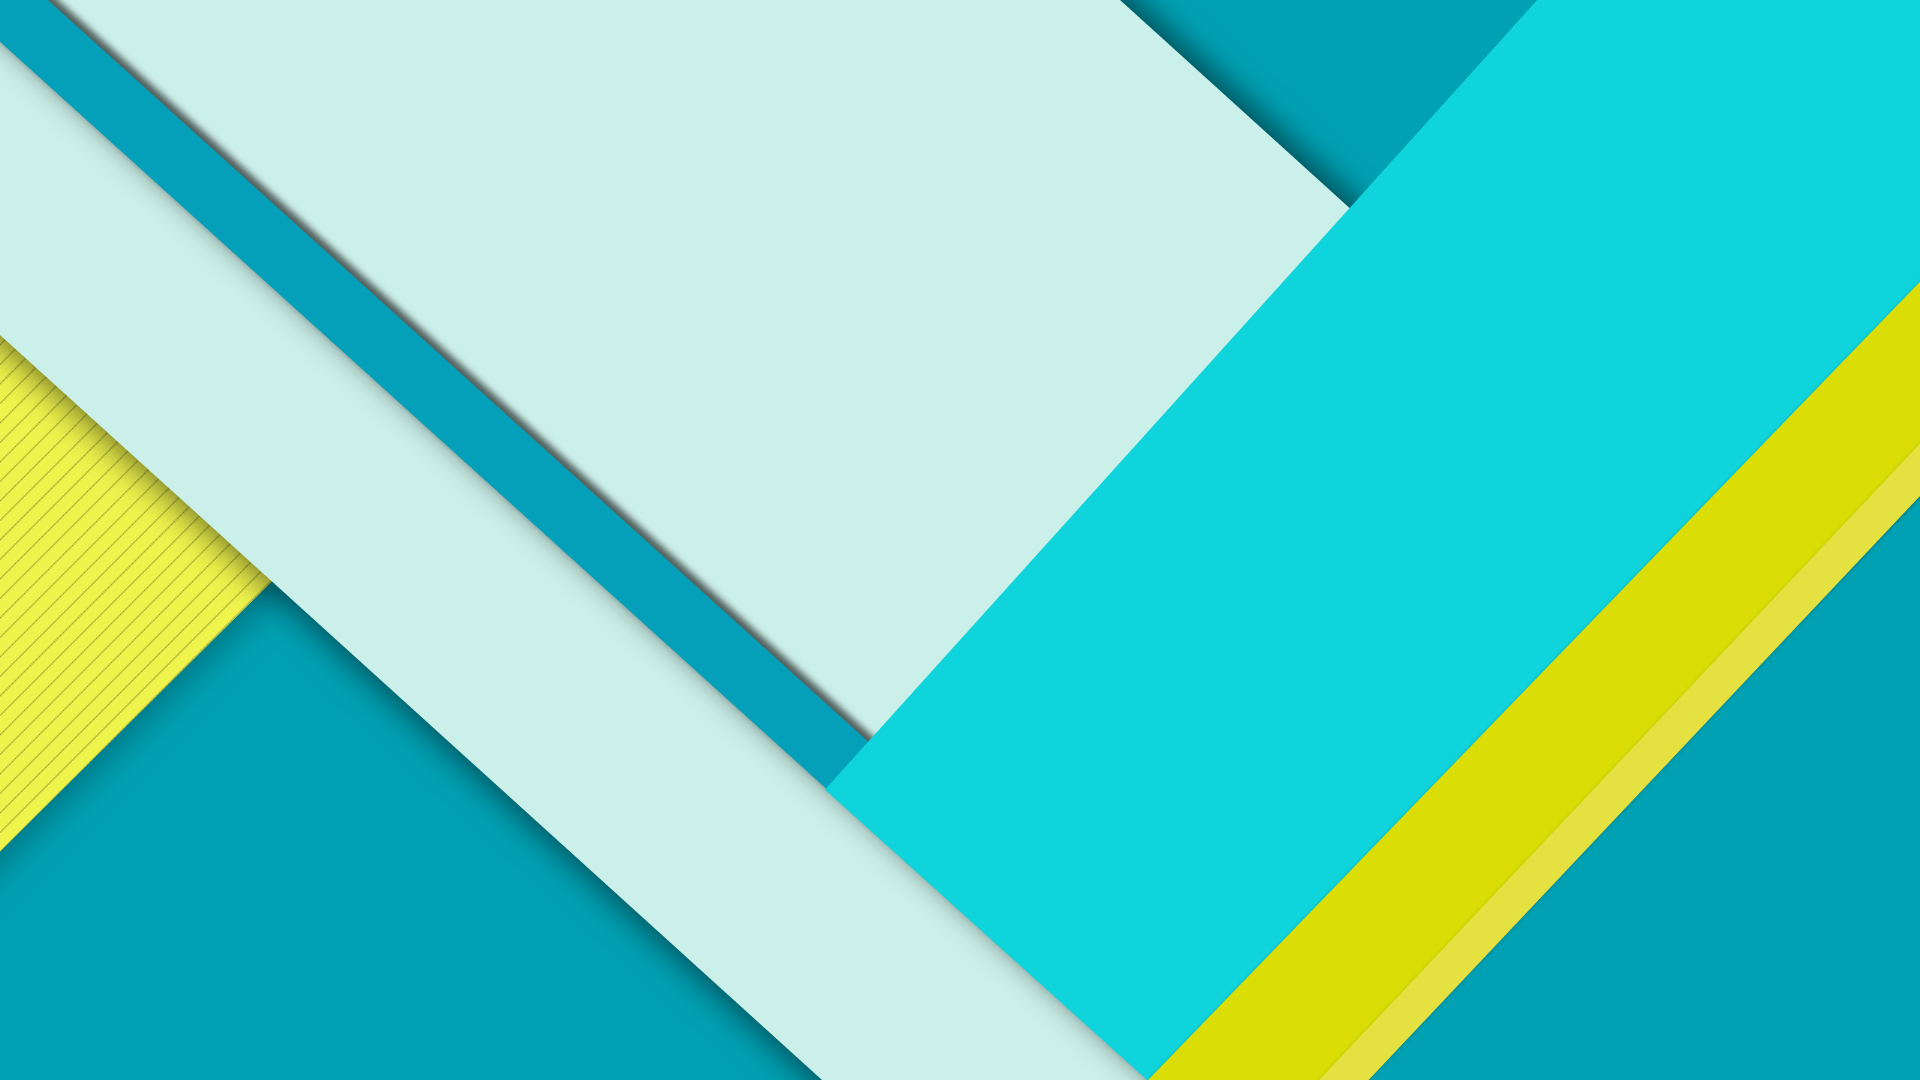 40 Best Material Design Wallpapers 4K (2016) HD Windows 7